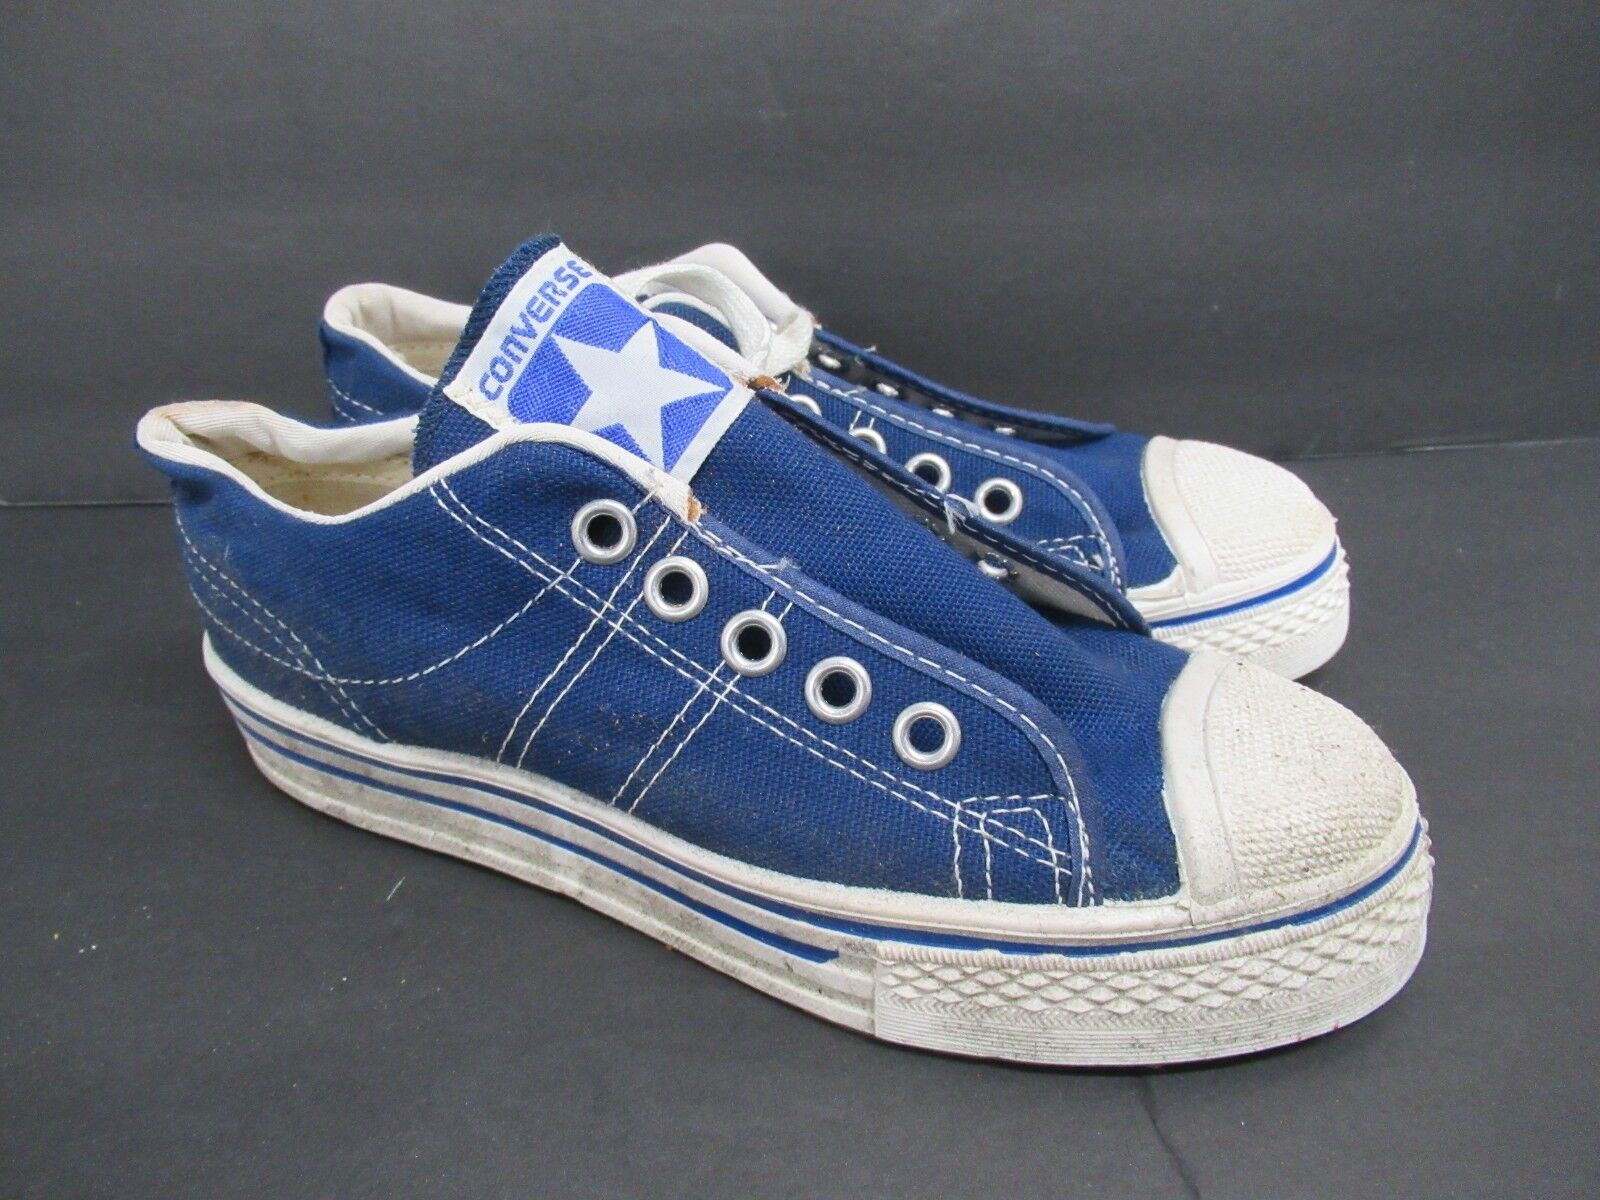 Vintage Retro Converse in Blue Canvas Shoes 60s/70s Kids' Size: 13.5